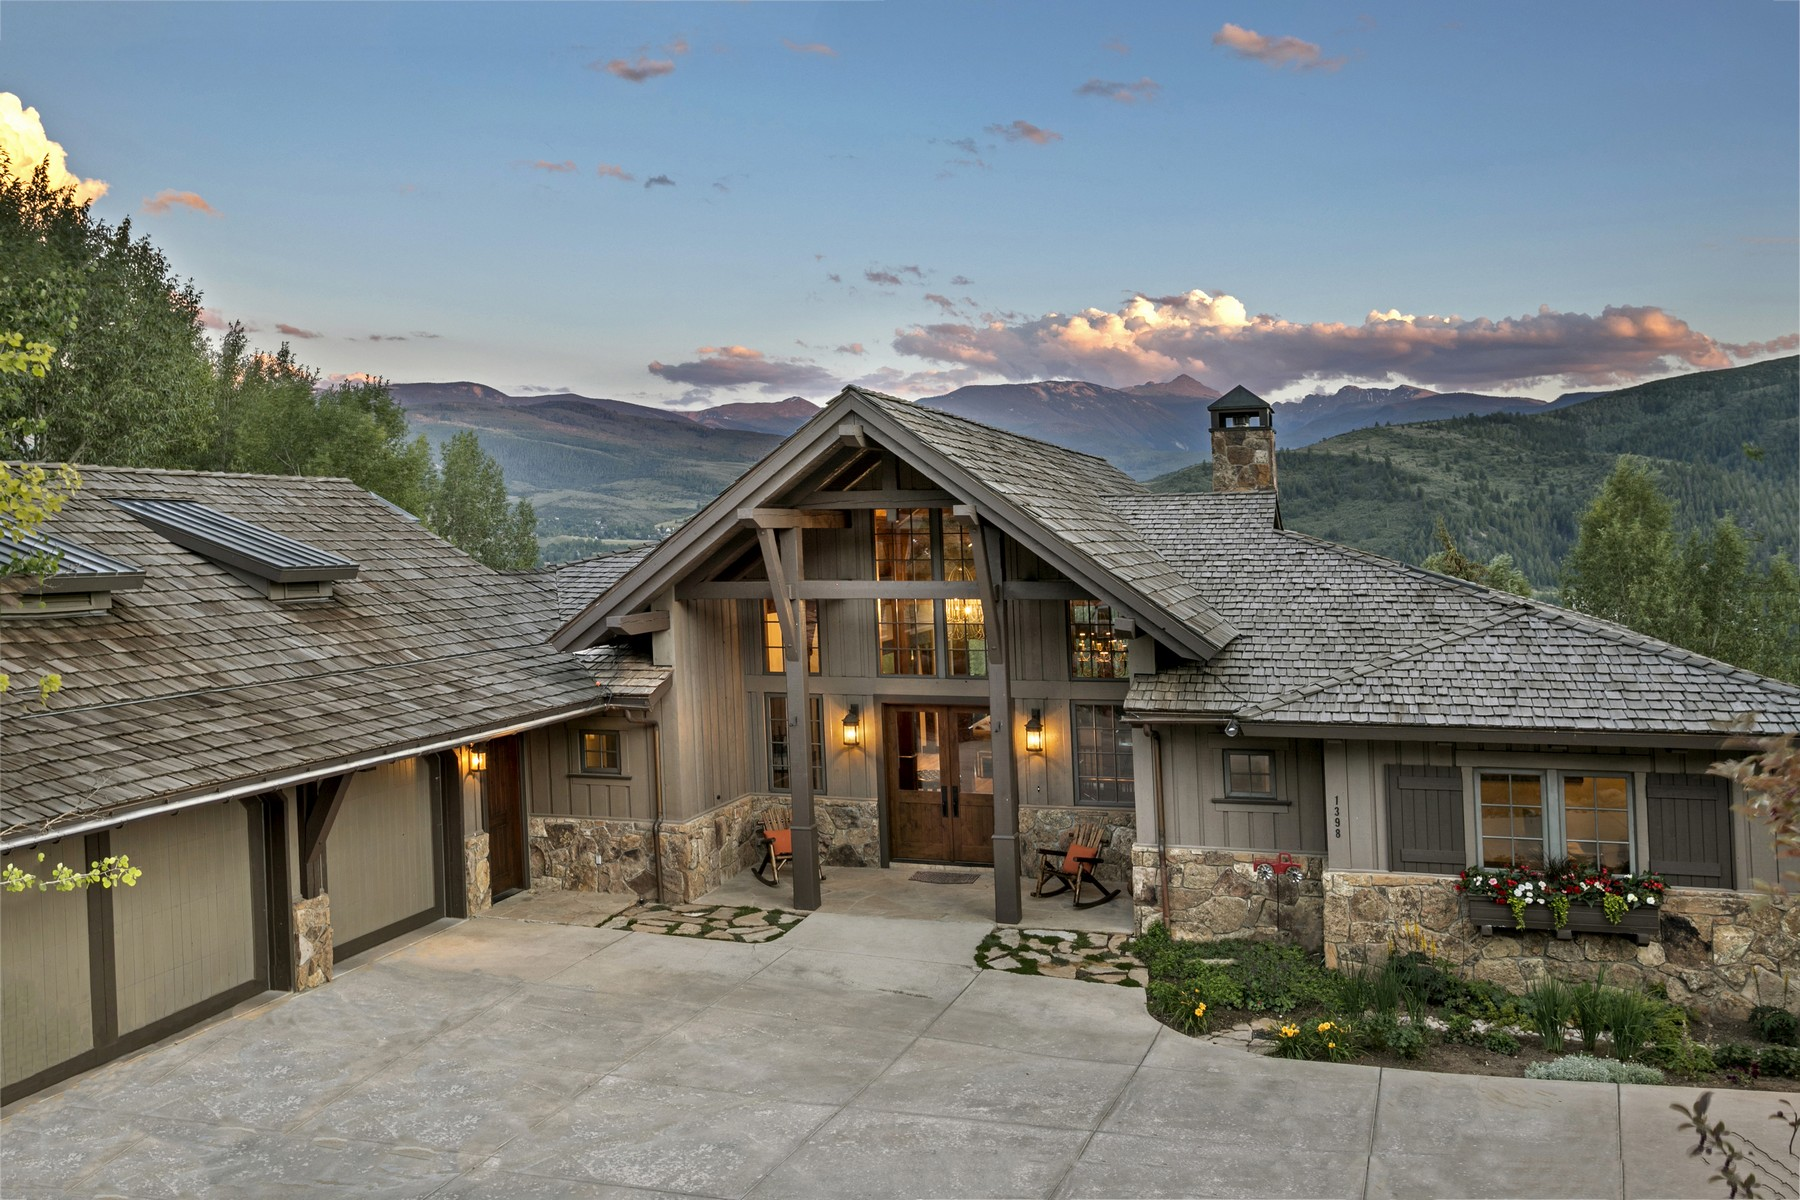 Single Family Home for Active at Exceptional views from this Cordillera Valley Club home 1398 Beard Creek Trail Edwards, Colorado 81632 United States